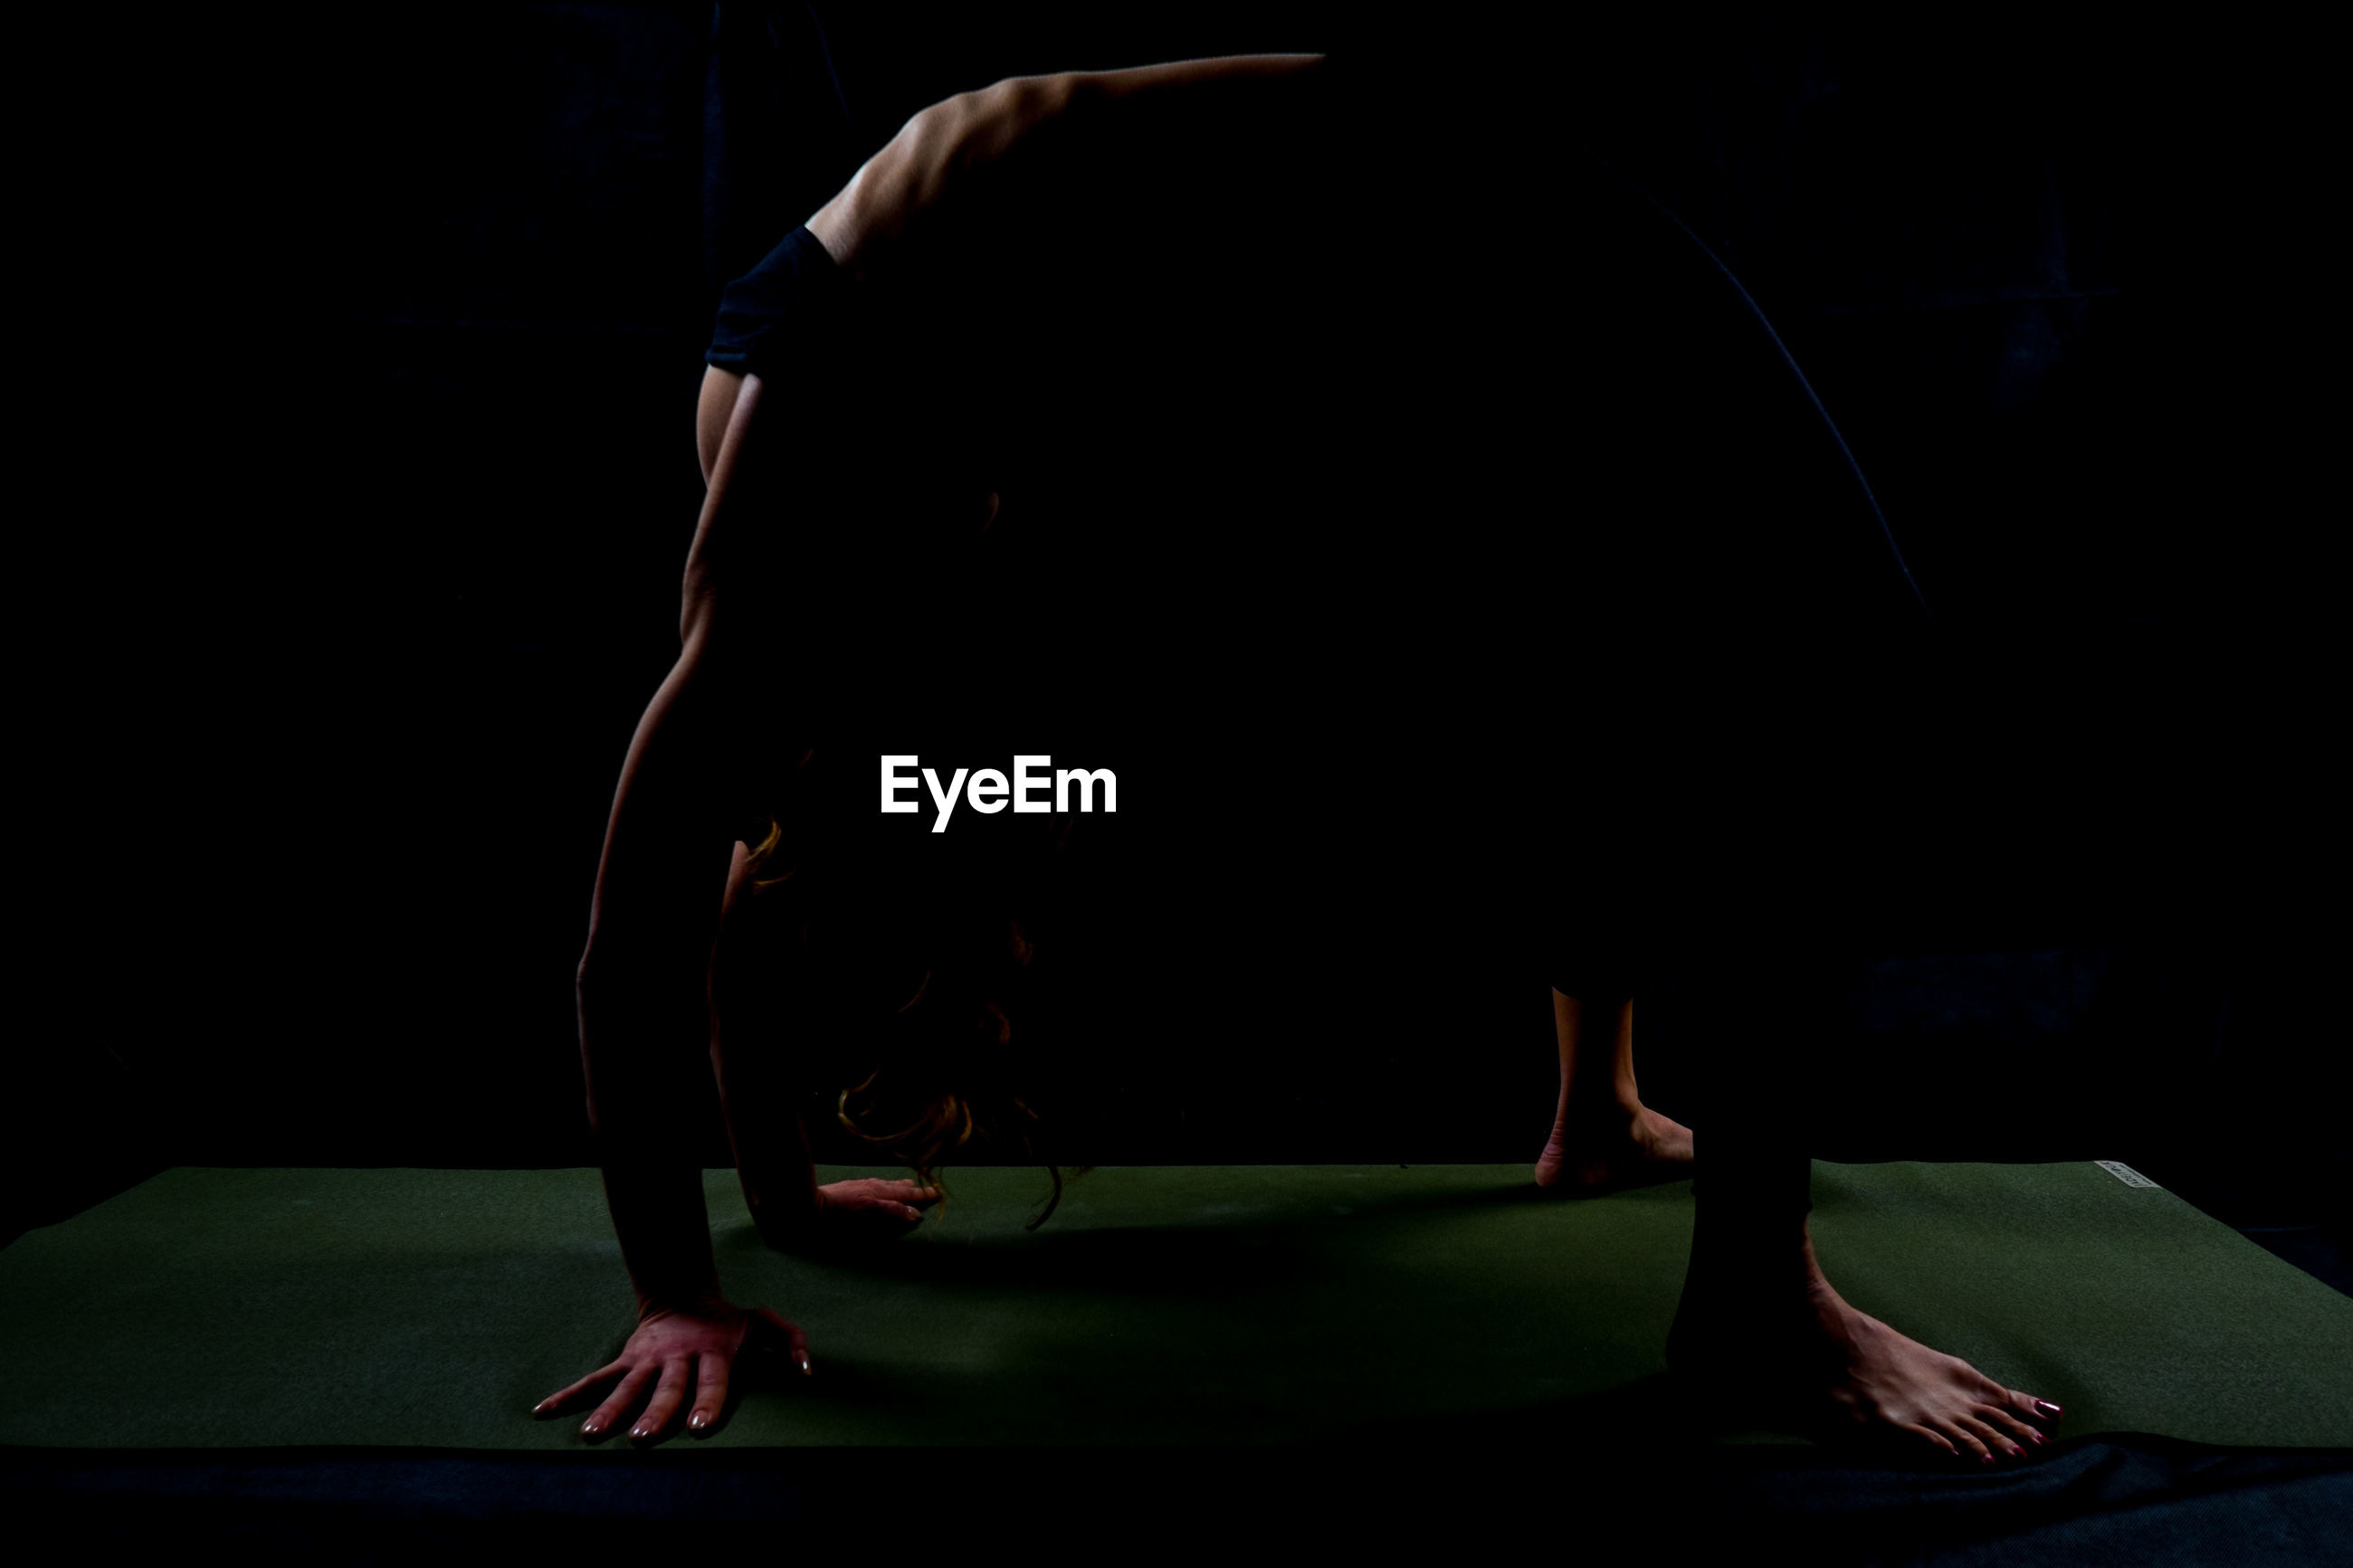 Side view of athlete bending over backwards on exercise mat against black background